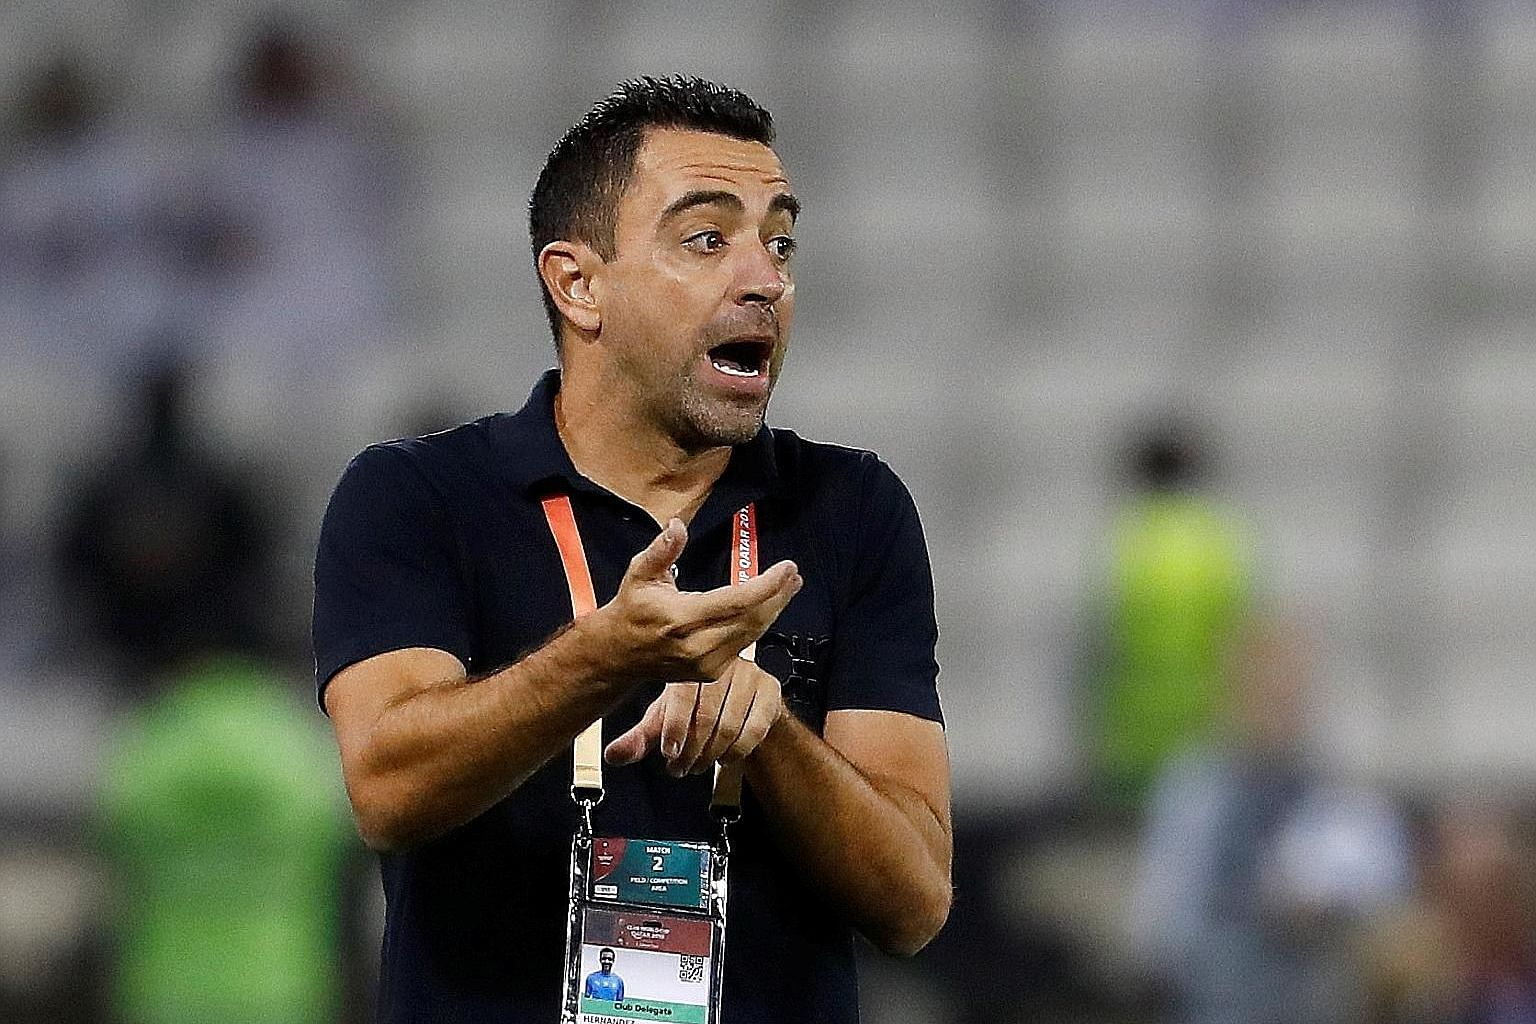 Xavi Hernandez, 39, is seven months into his first managerial role at Qatari side Al Sadd.